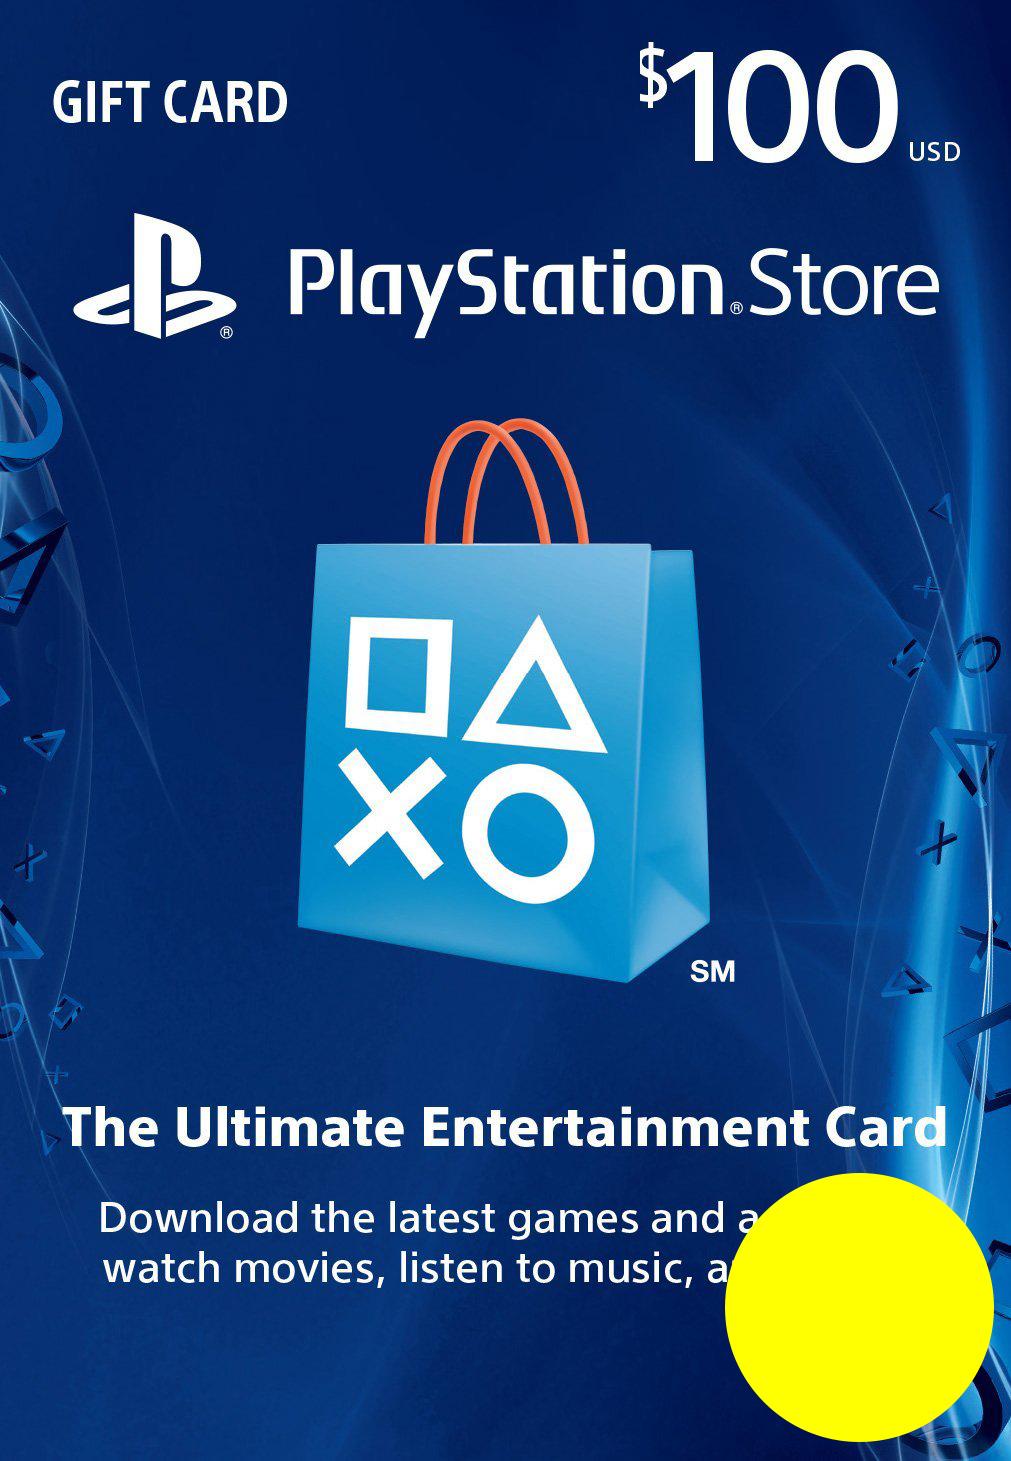 PSN Gift Card Code USA $100 PS4, PS3, PS Vita